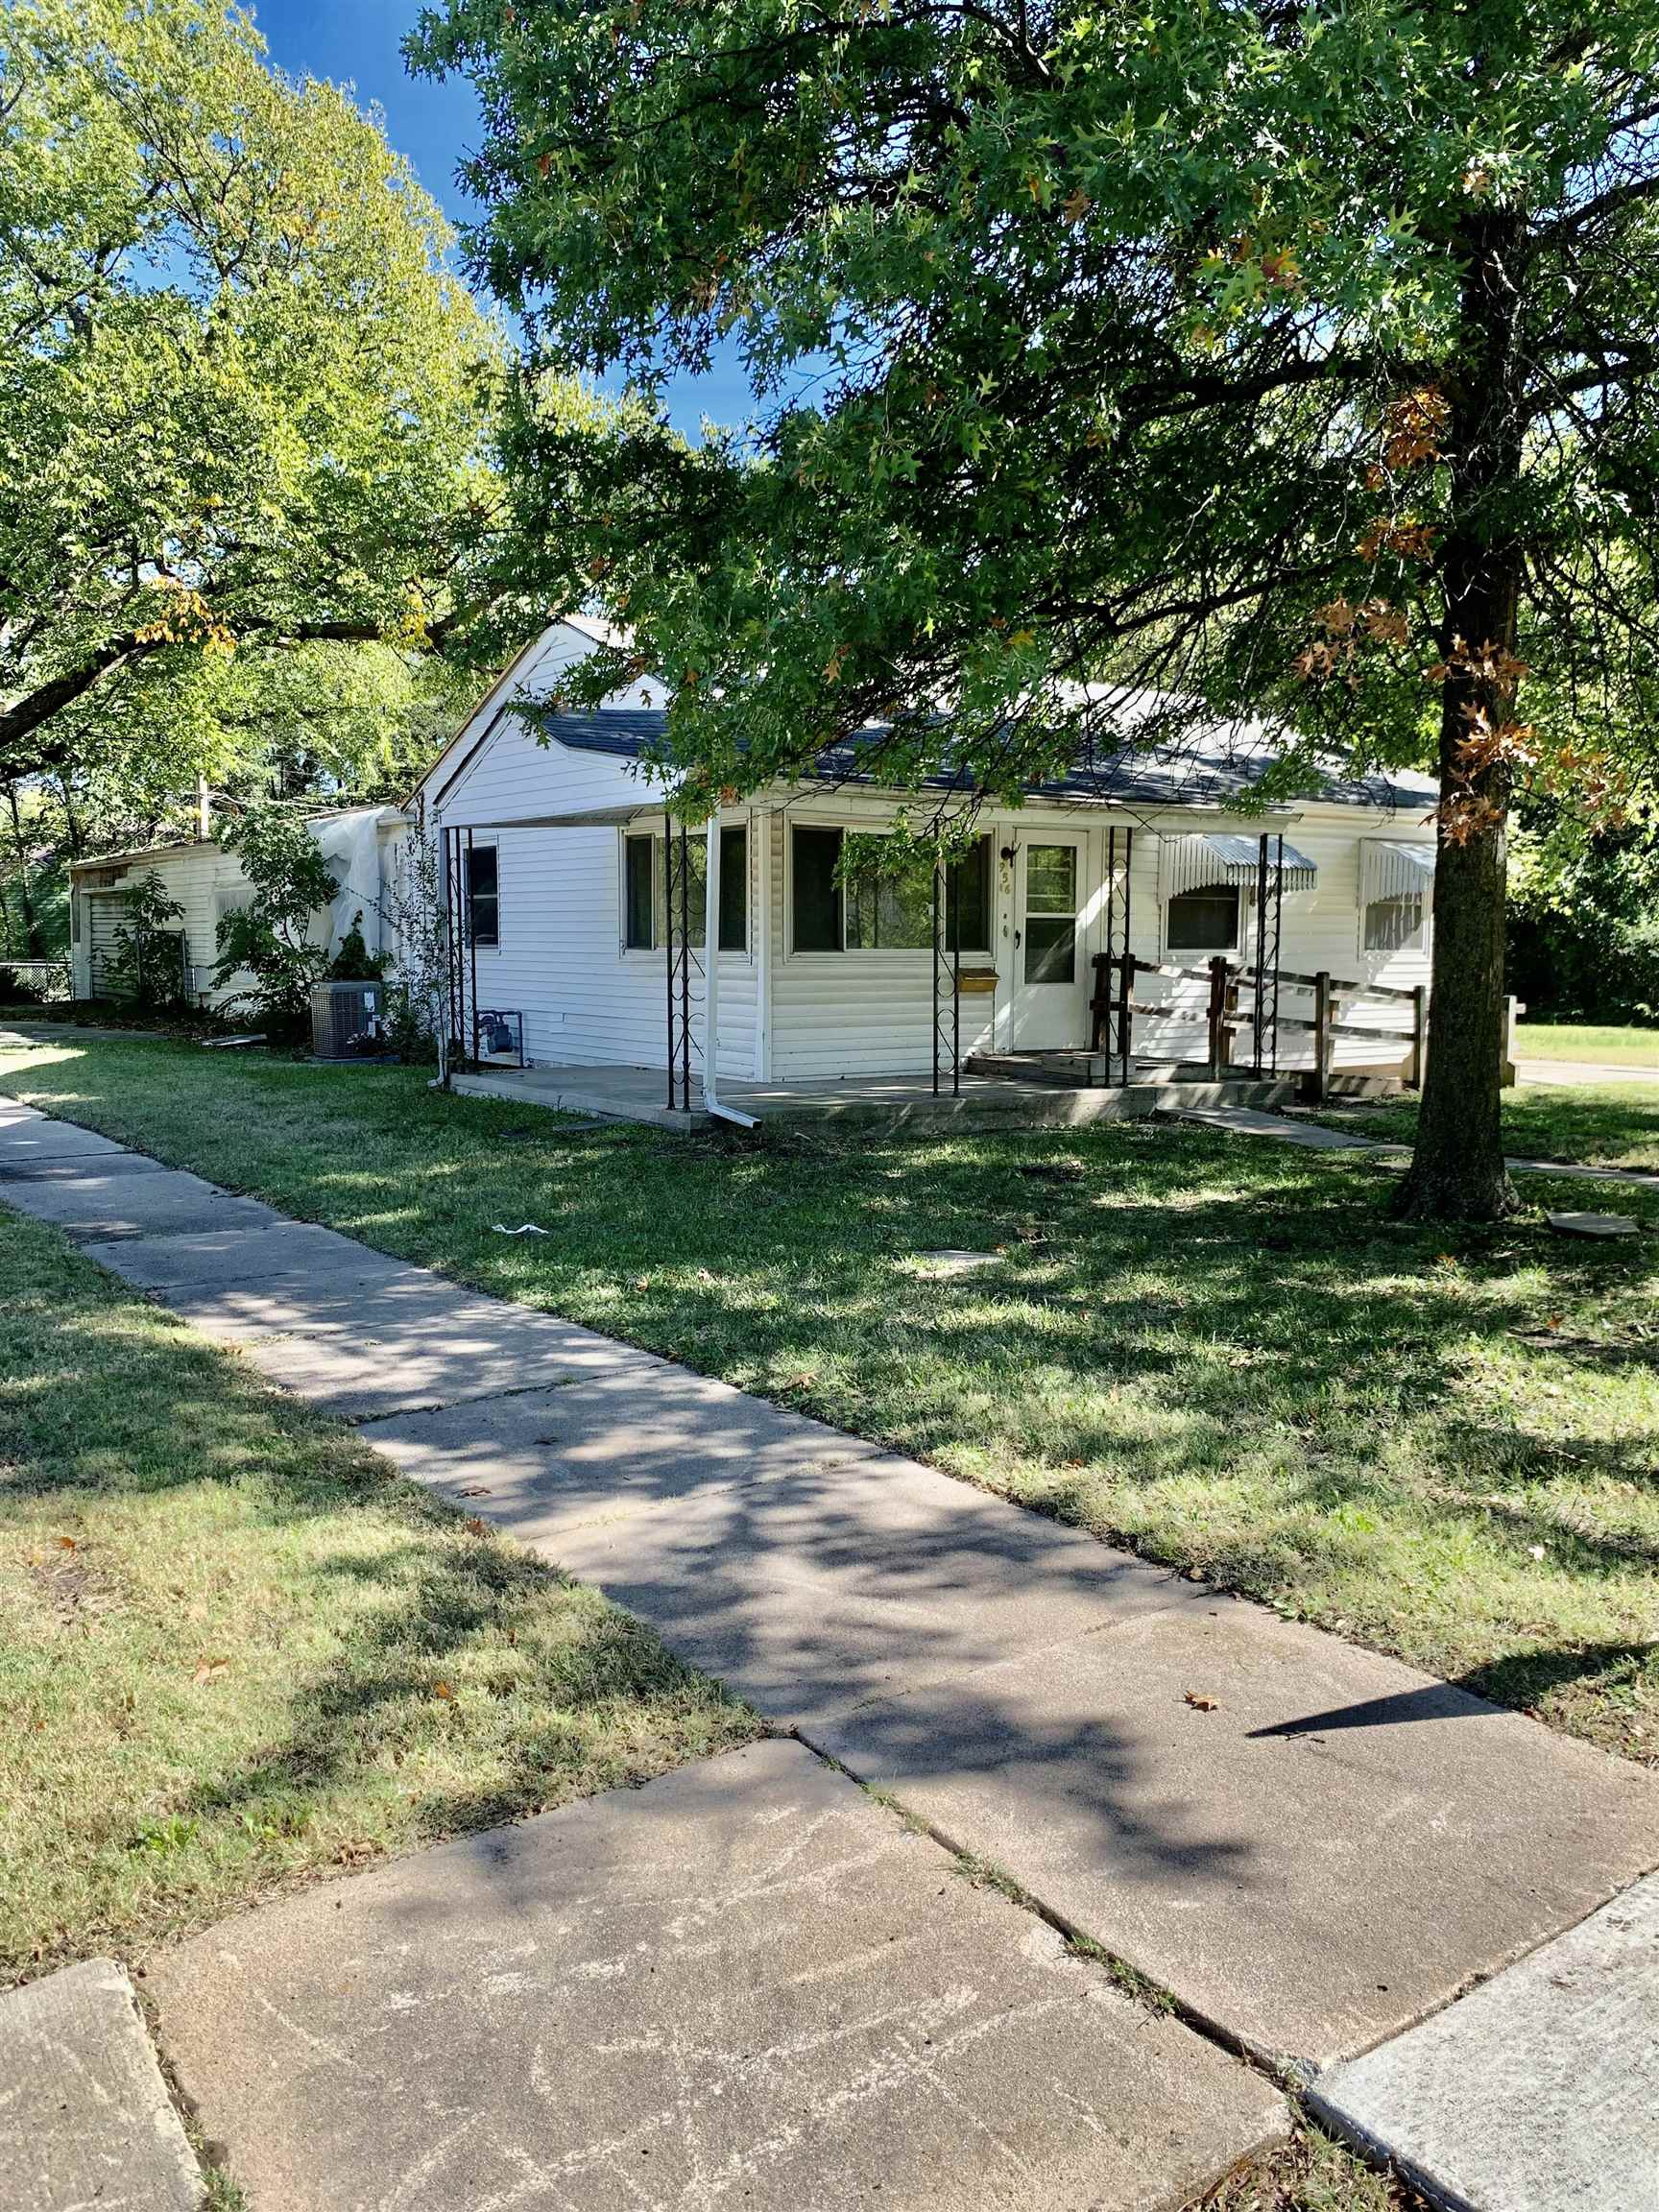 Corner lot on the SE Corner of 9th and Harding St. 3 bedrooms and 3 bathrooms on the main floor. The